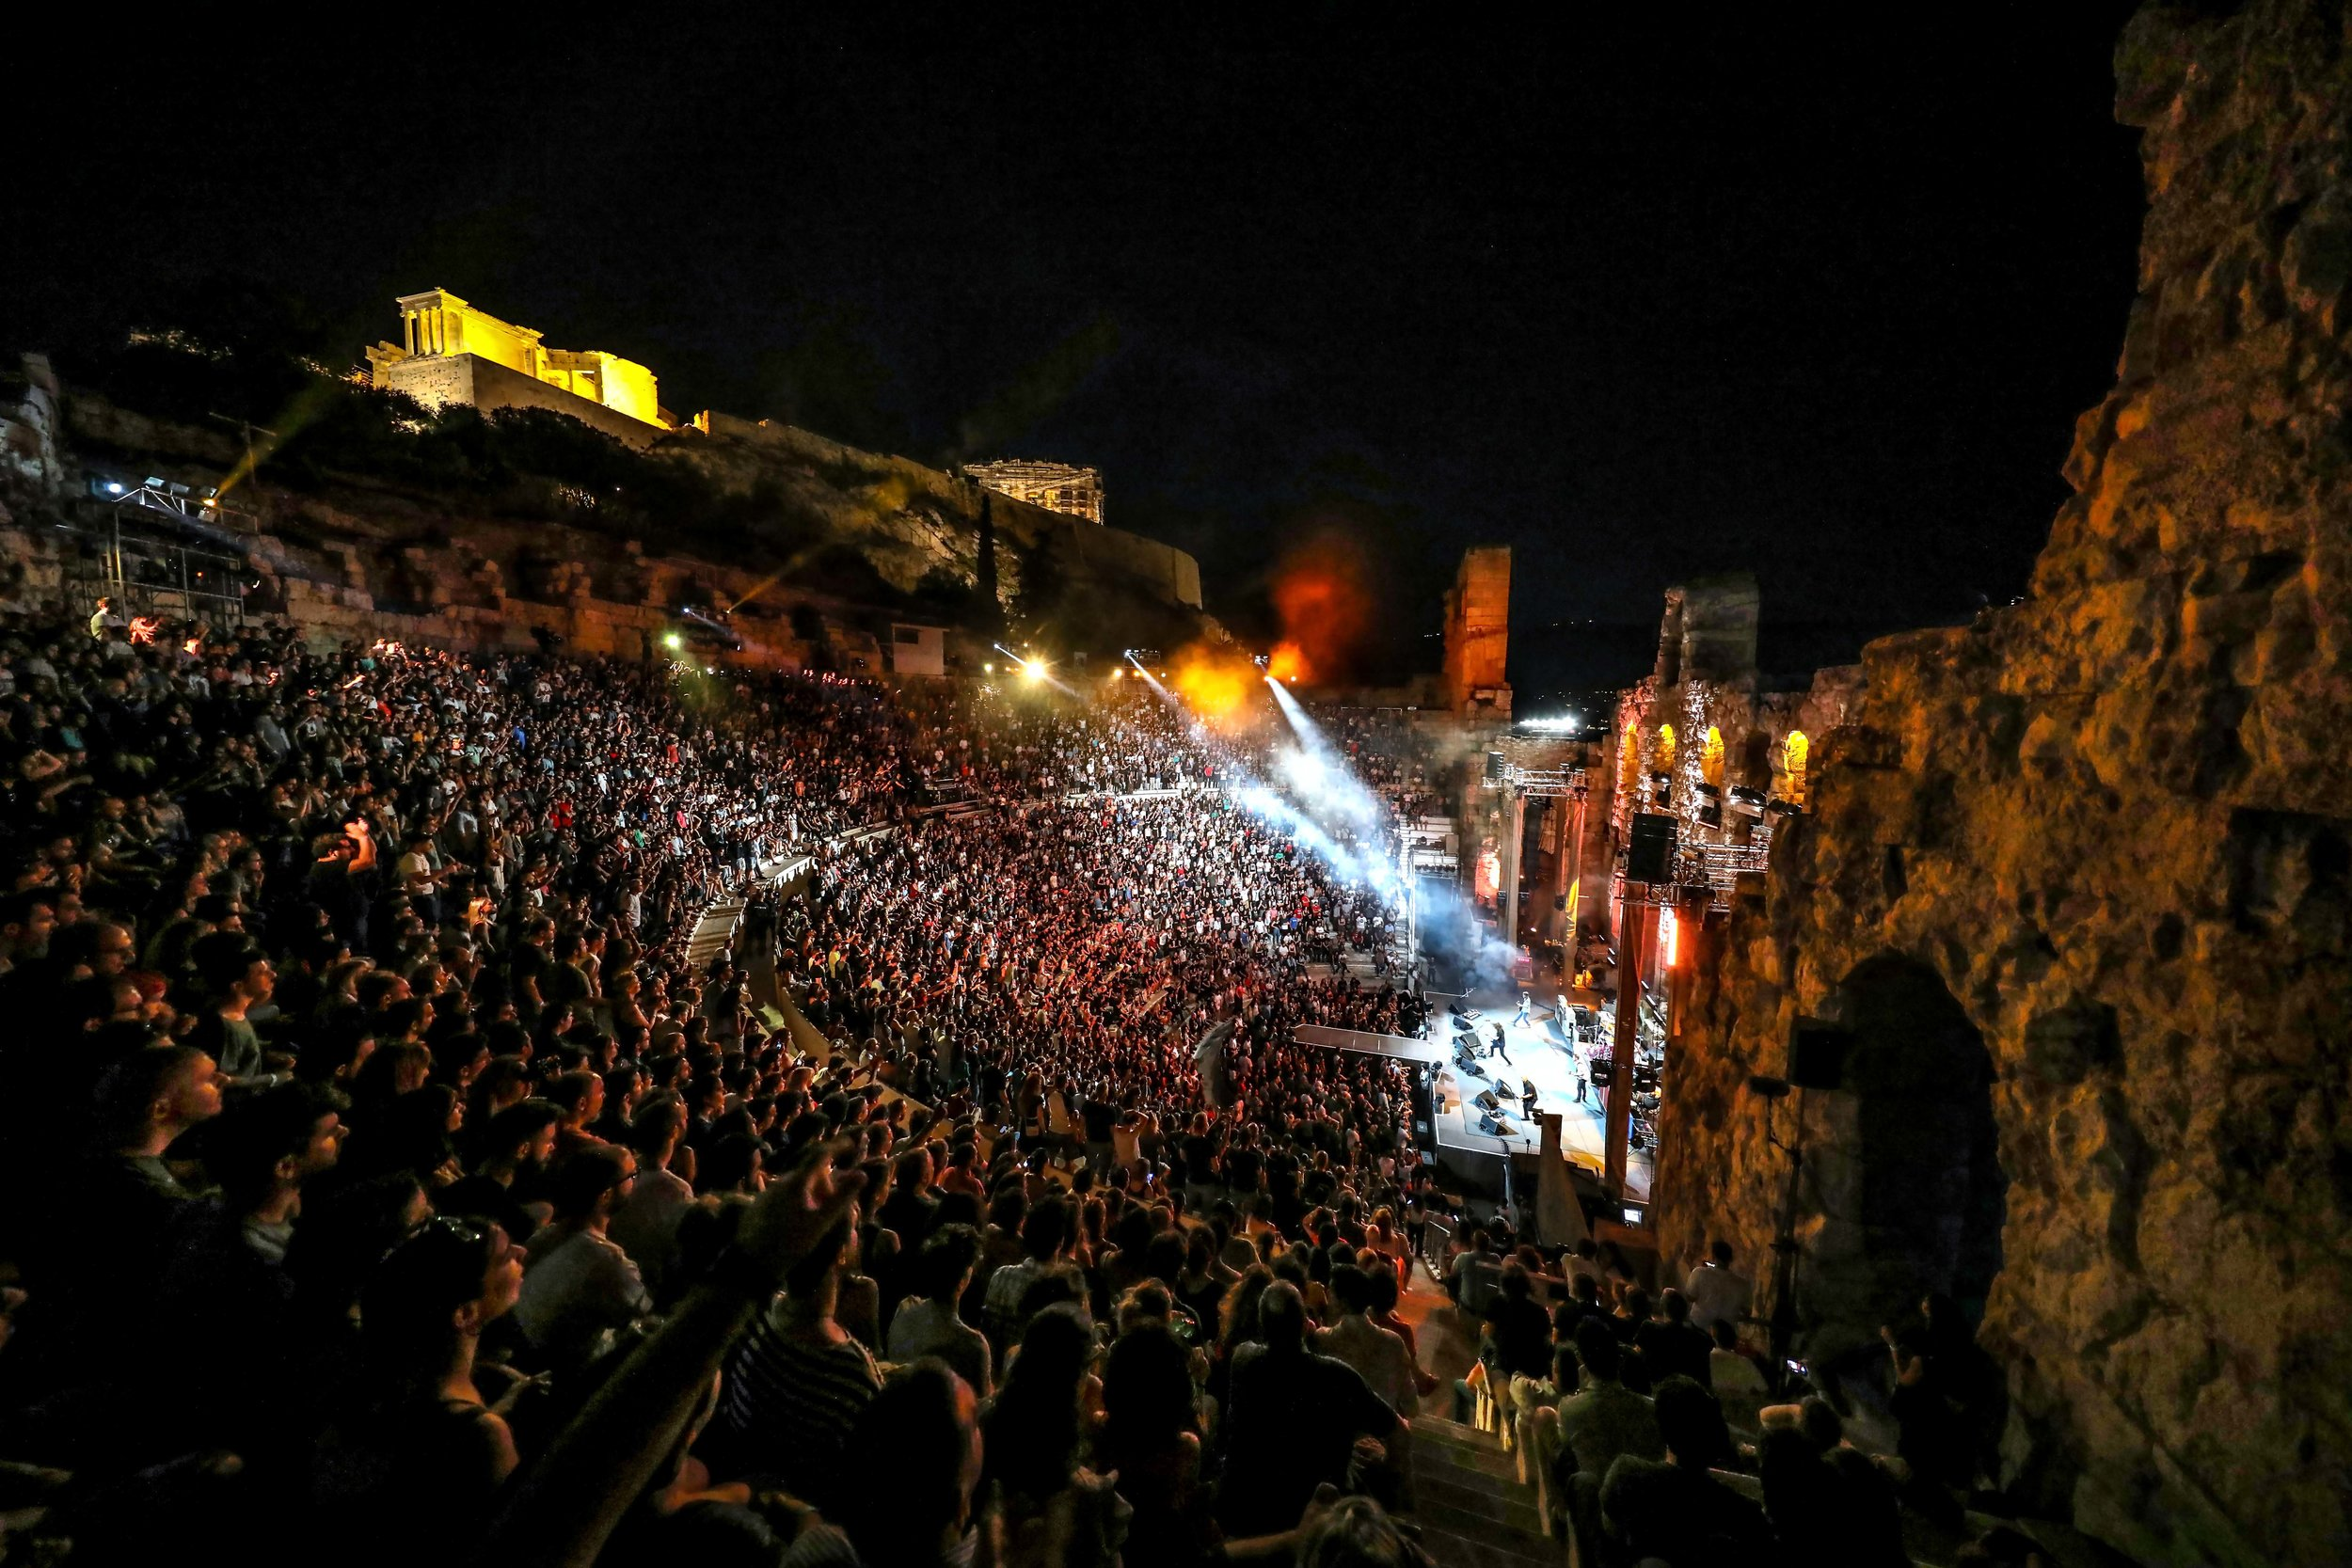 LANDMARKS LIVE_Foo Fighters_Odeon at Acropolis_2M4A9127 by Chris Bradshaw.jpg